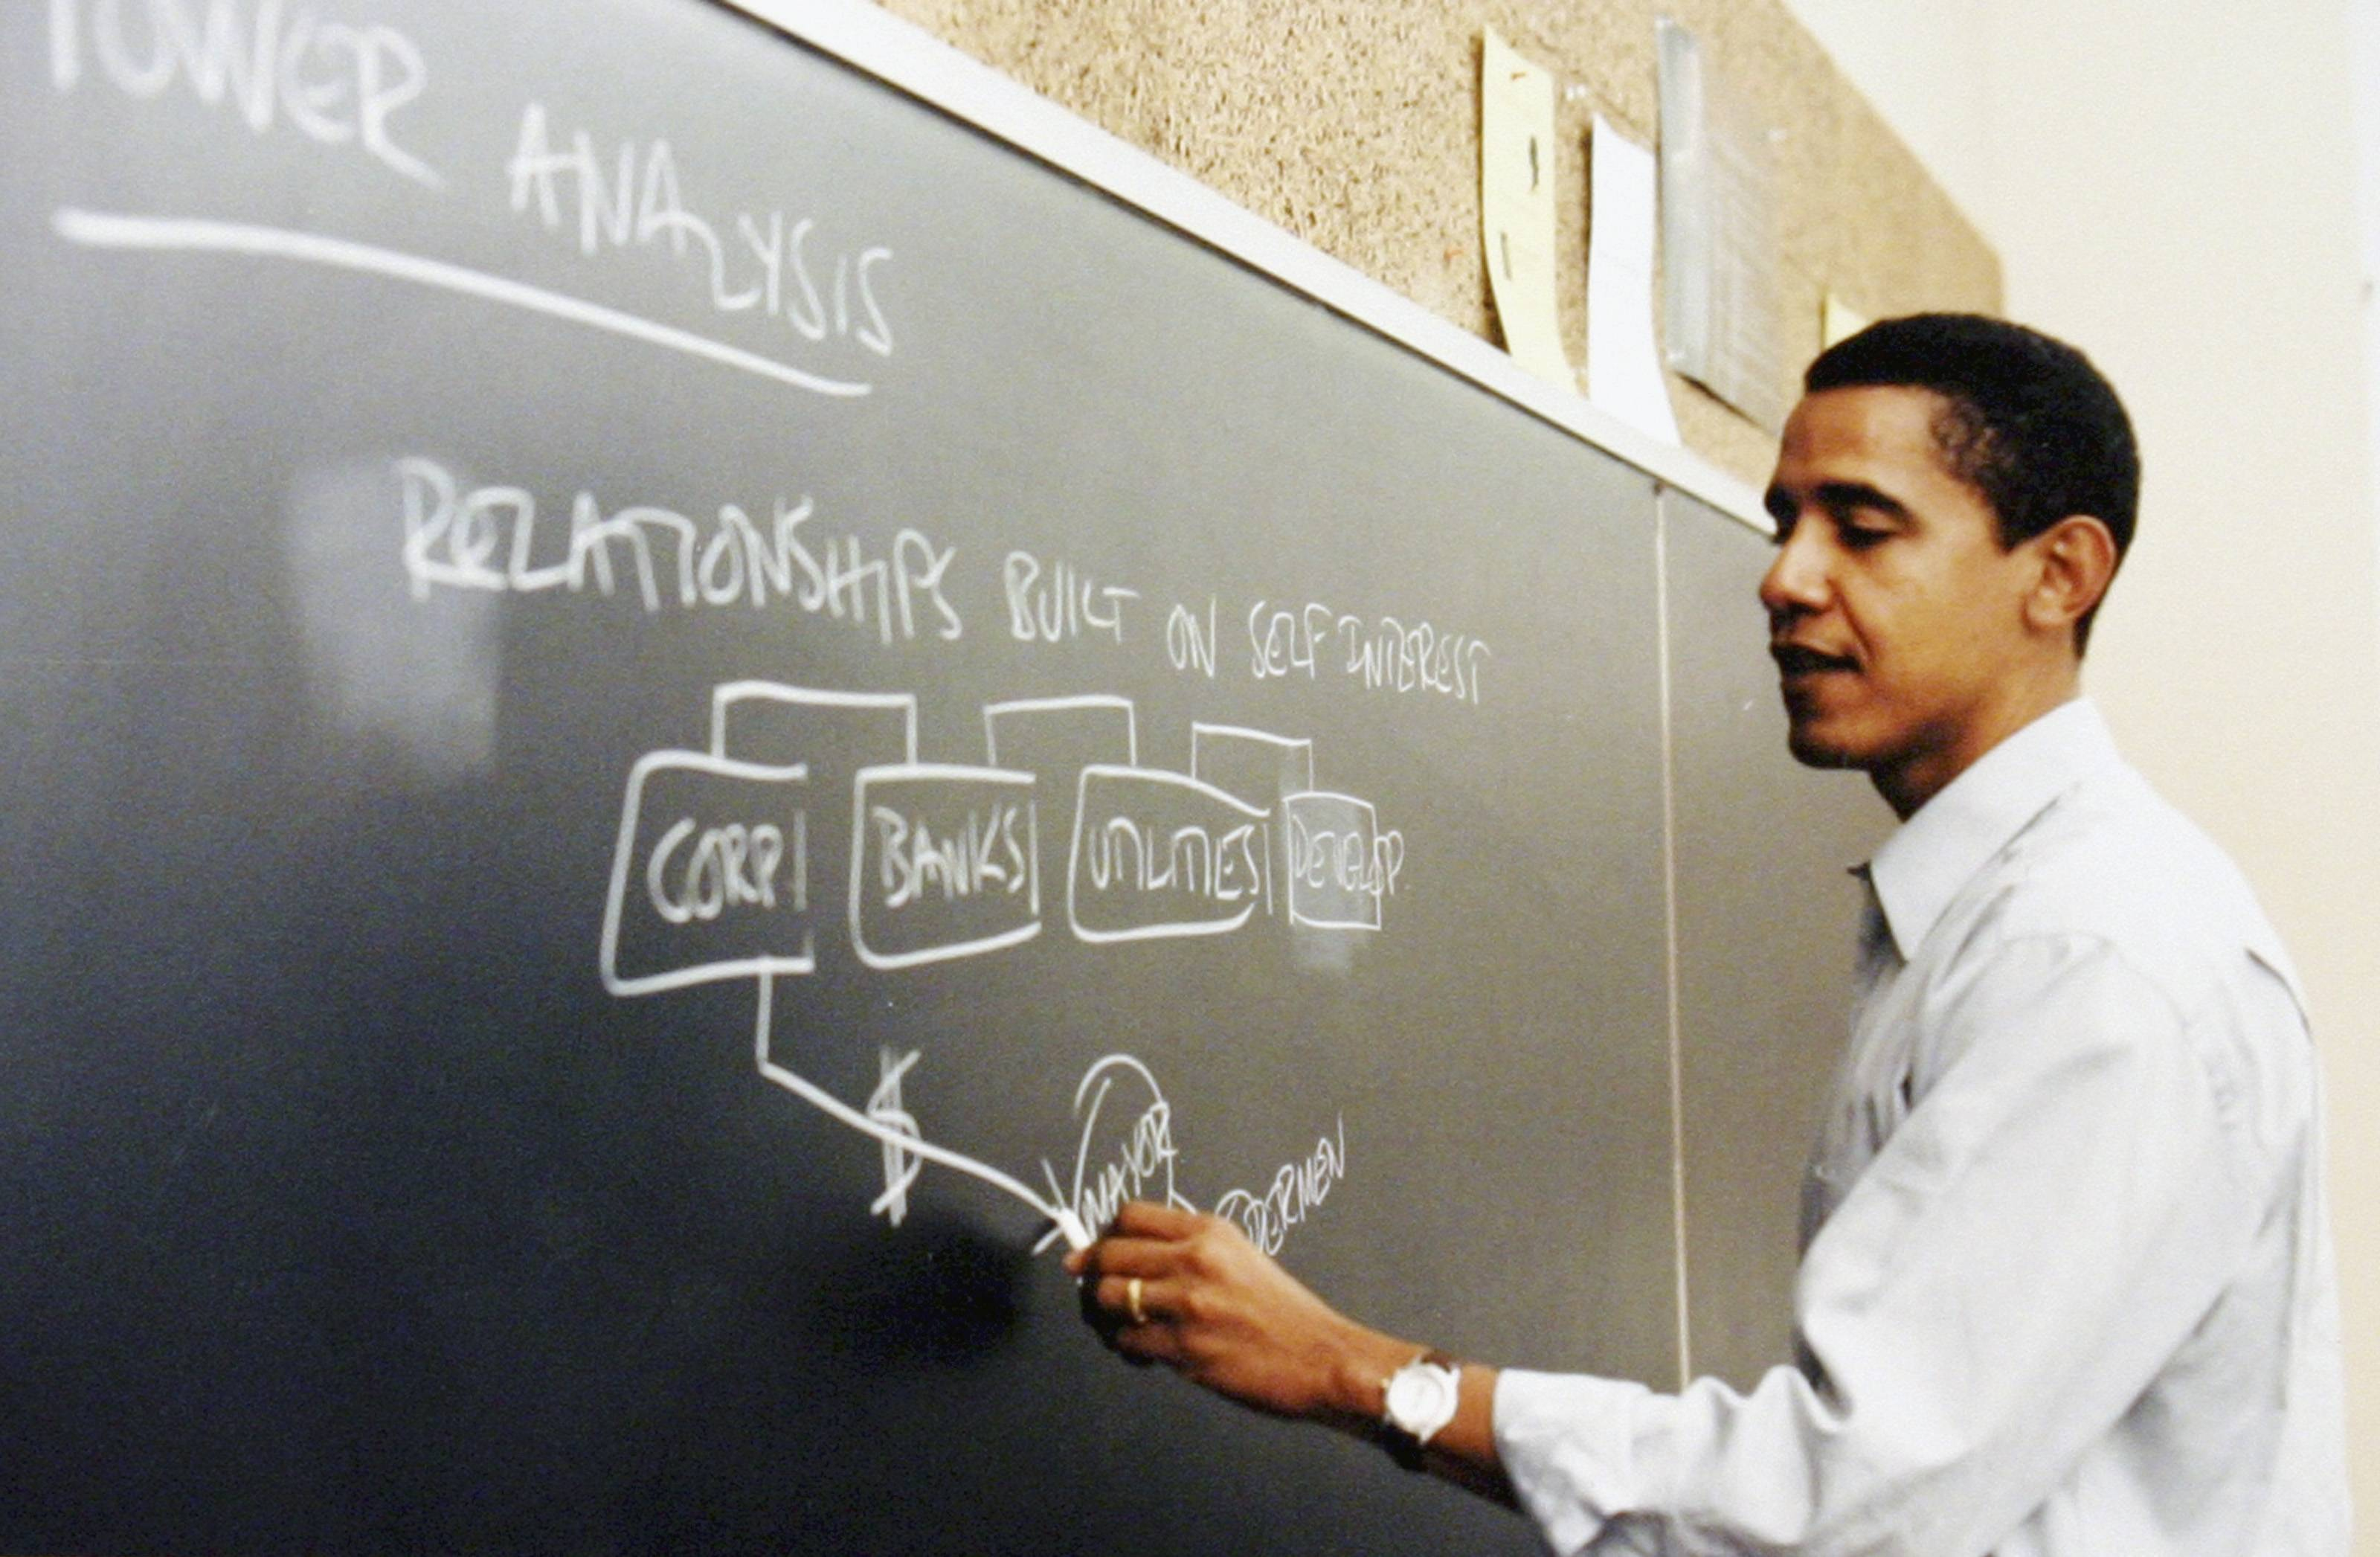 President Barack Obama spent 12 years as a constitutional law professor at the University of Chicago, which will be submitting one of the bids for his presidential library.